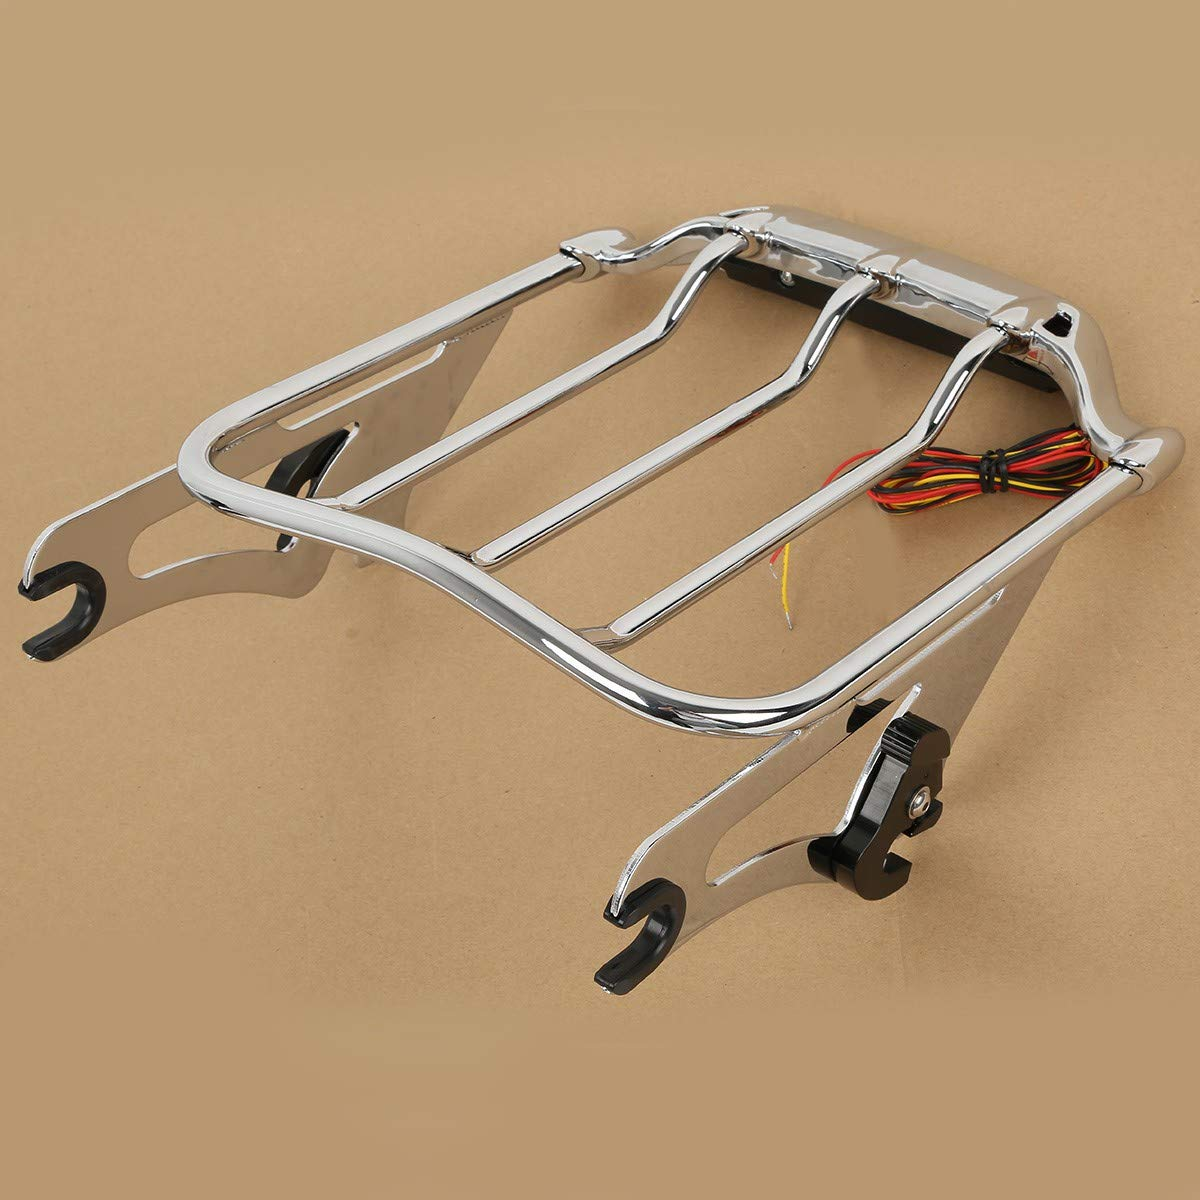 TCMT Chrome 2-UP Air Wing Motorcycles Luggage Rack Mounting Fits For w//Light Fits For Harley Street Road Glide FLTR FLHX 2009-2018